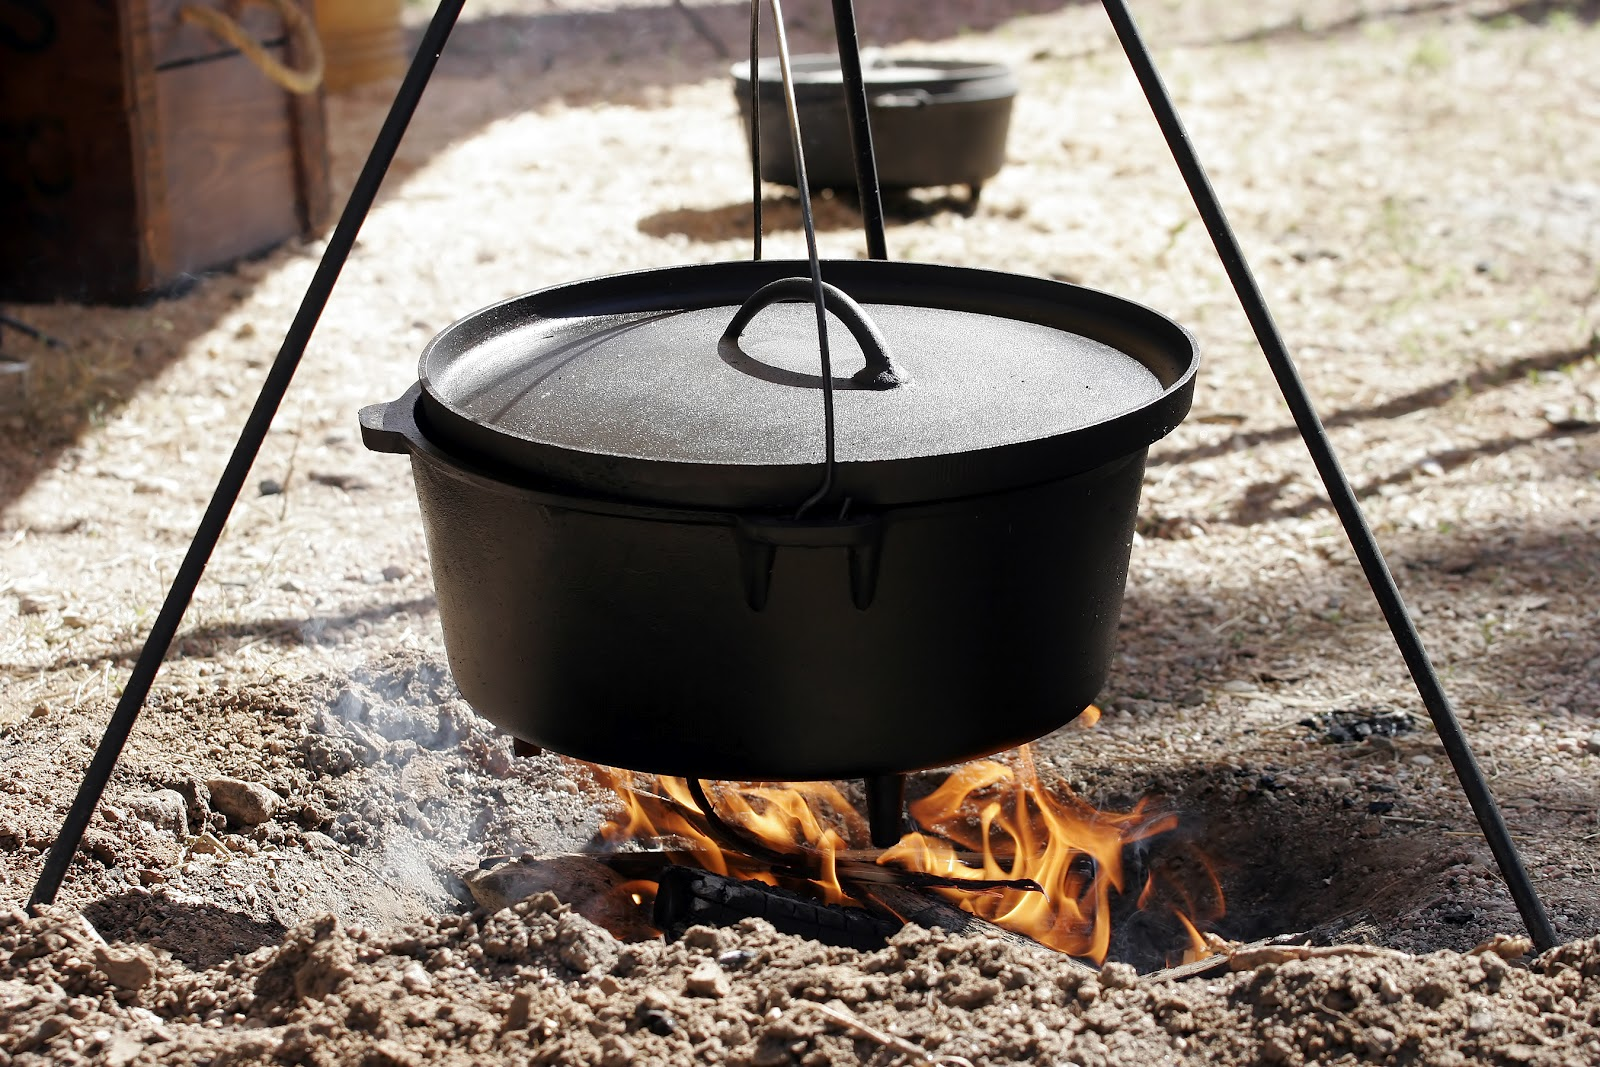 The following is a great Dutch Oven (D0) pot roast recipe OR fantastic for making sub sandwiches. There are notes at the end for changes when making sub's. The egg makes it all that much better.